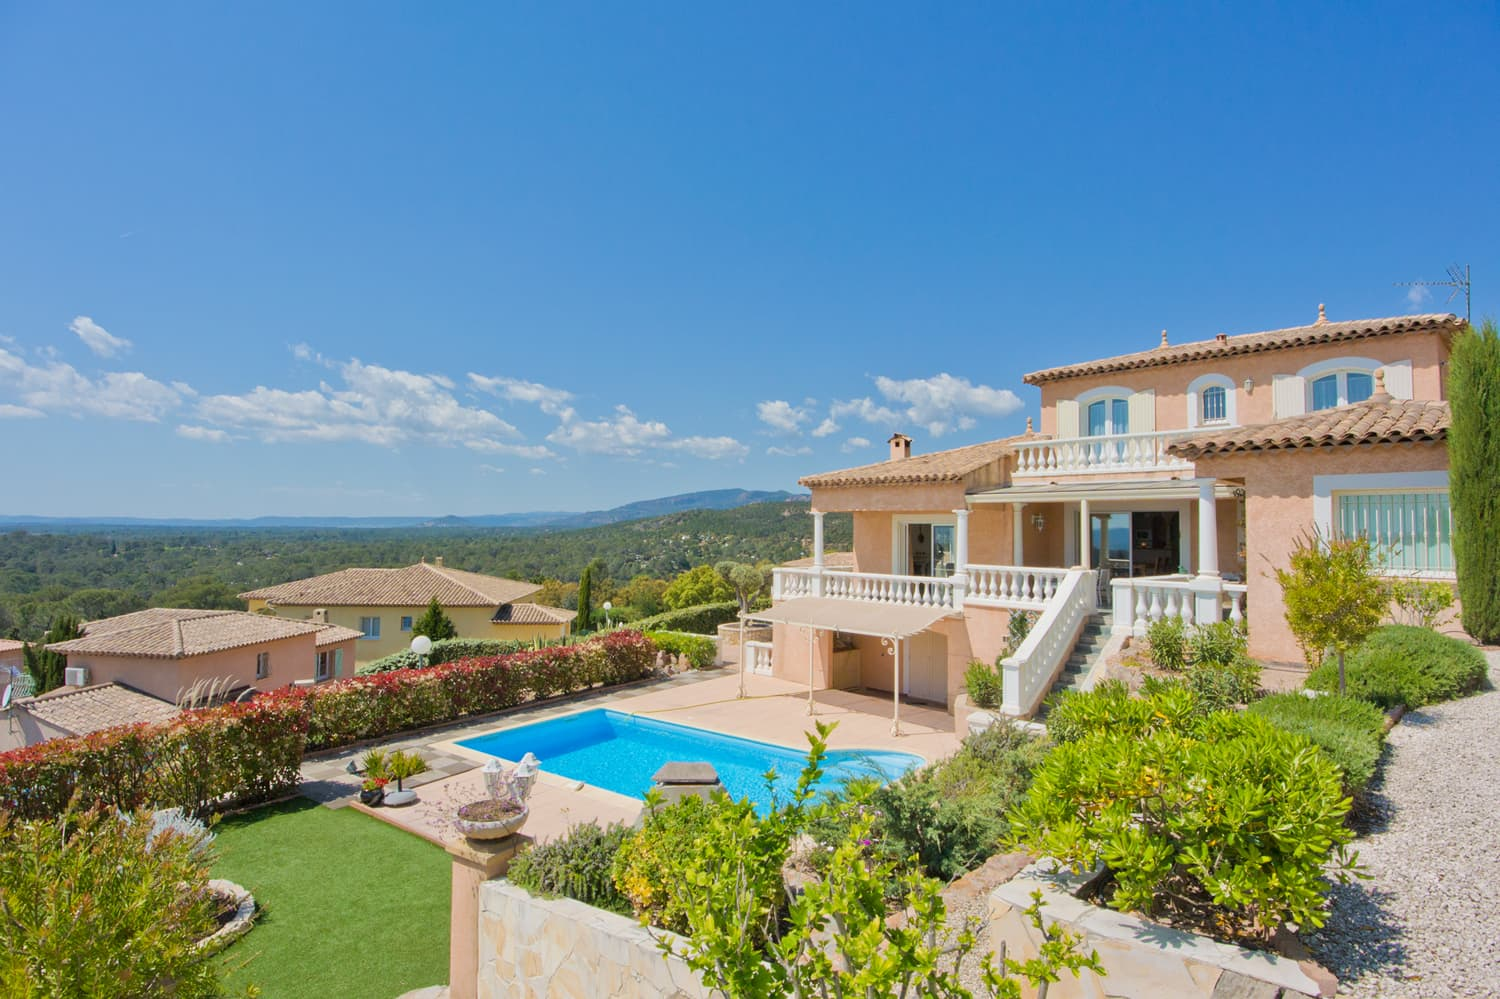 Holiday villa in Provence with private pool and lawned garden